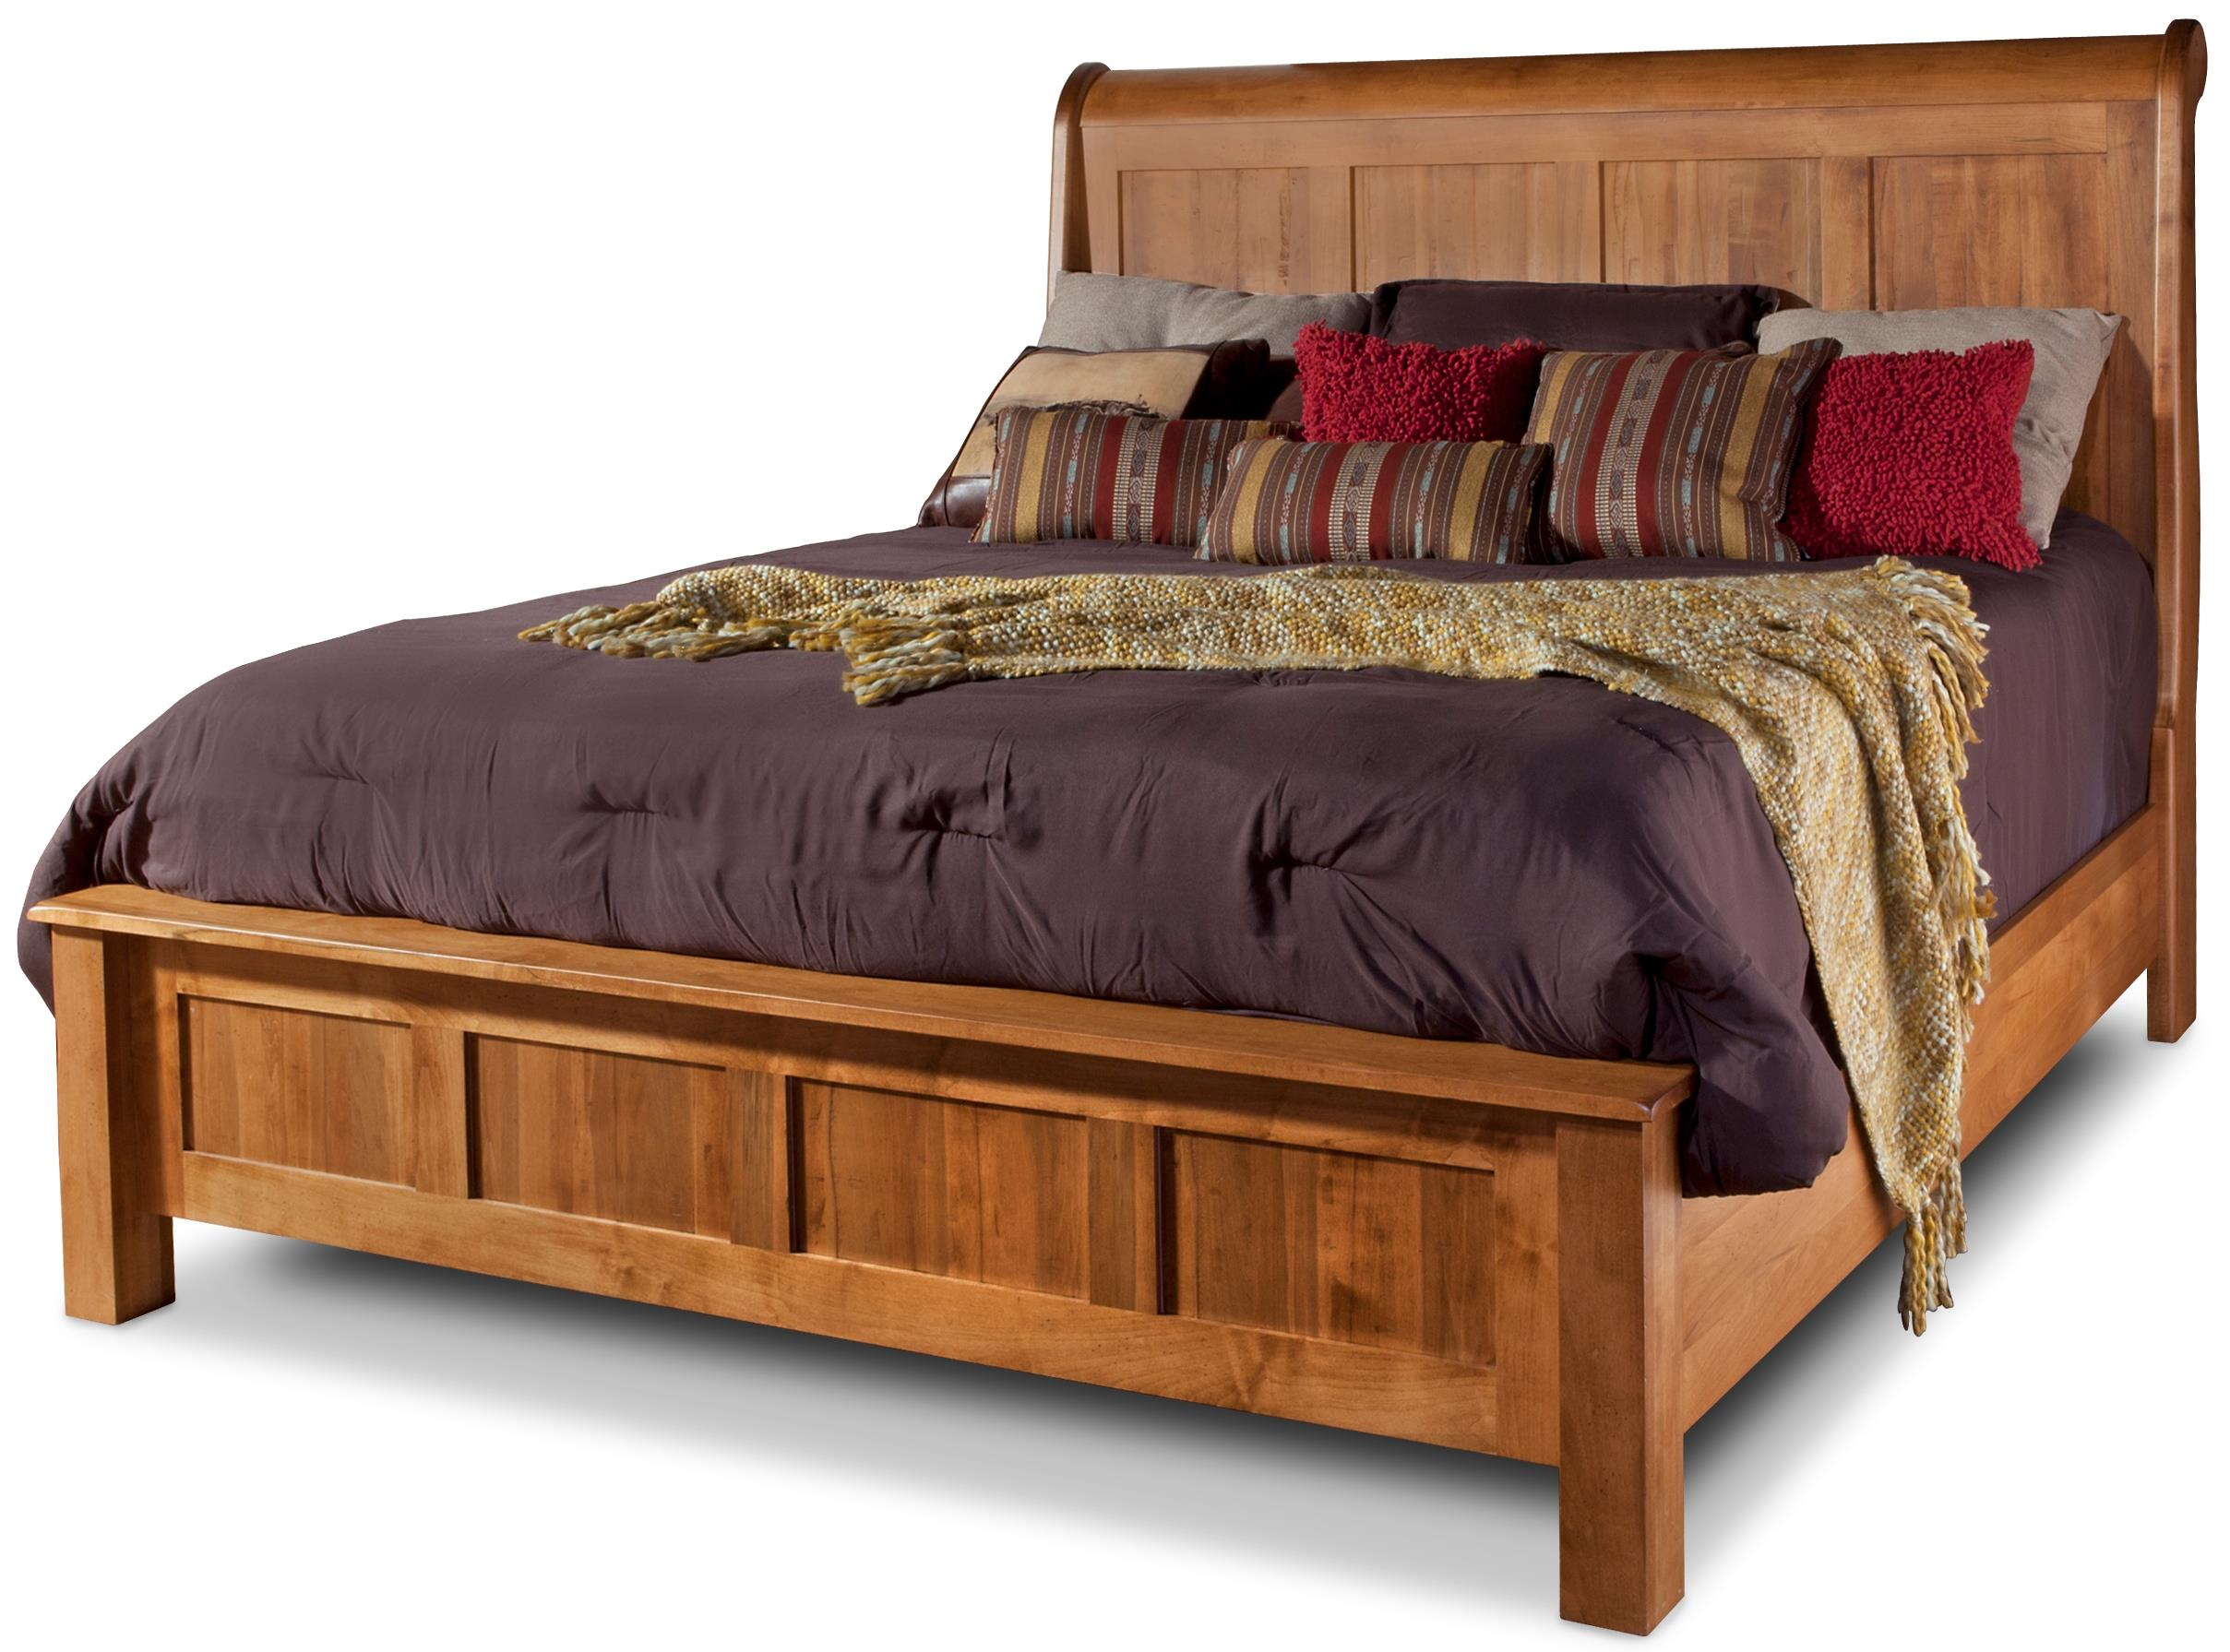 Daniel's Amish Lewiston King Sleigh Bed - Item Number: 30-4414+34+04